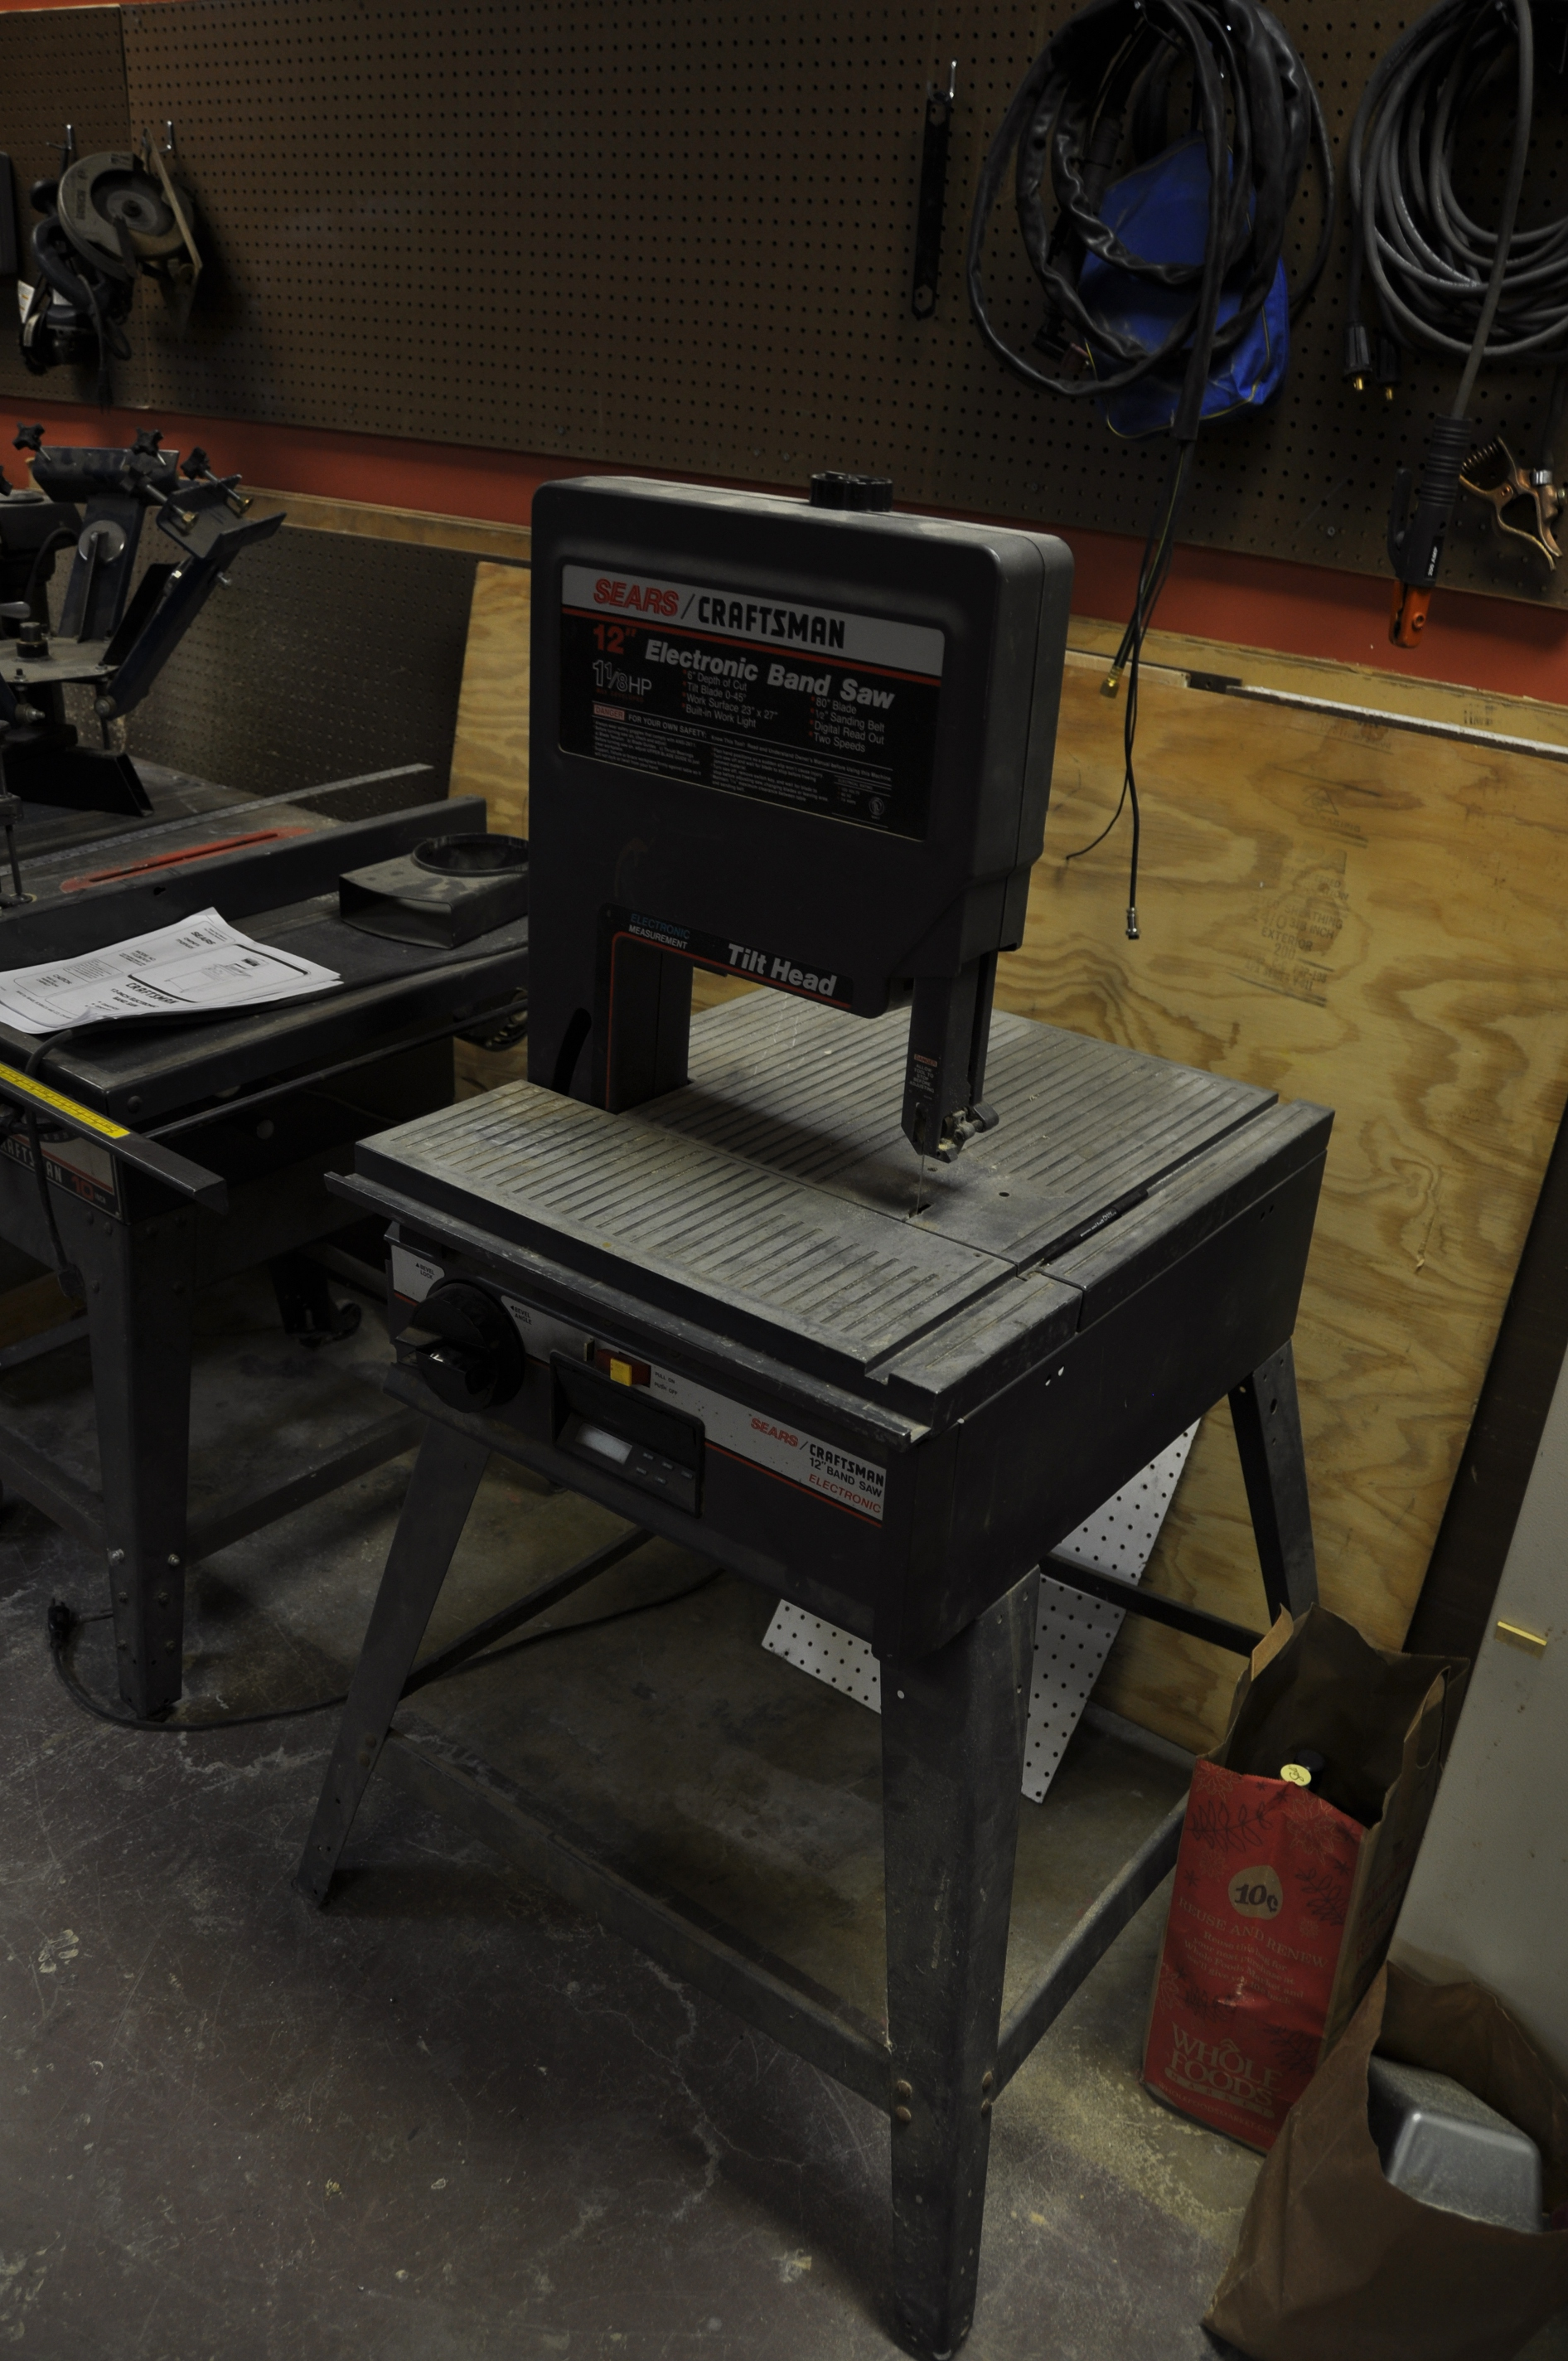 Band Saw Midsouthmakers Memphis Area Hackerpace